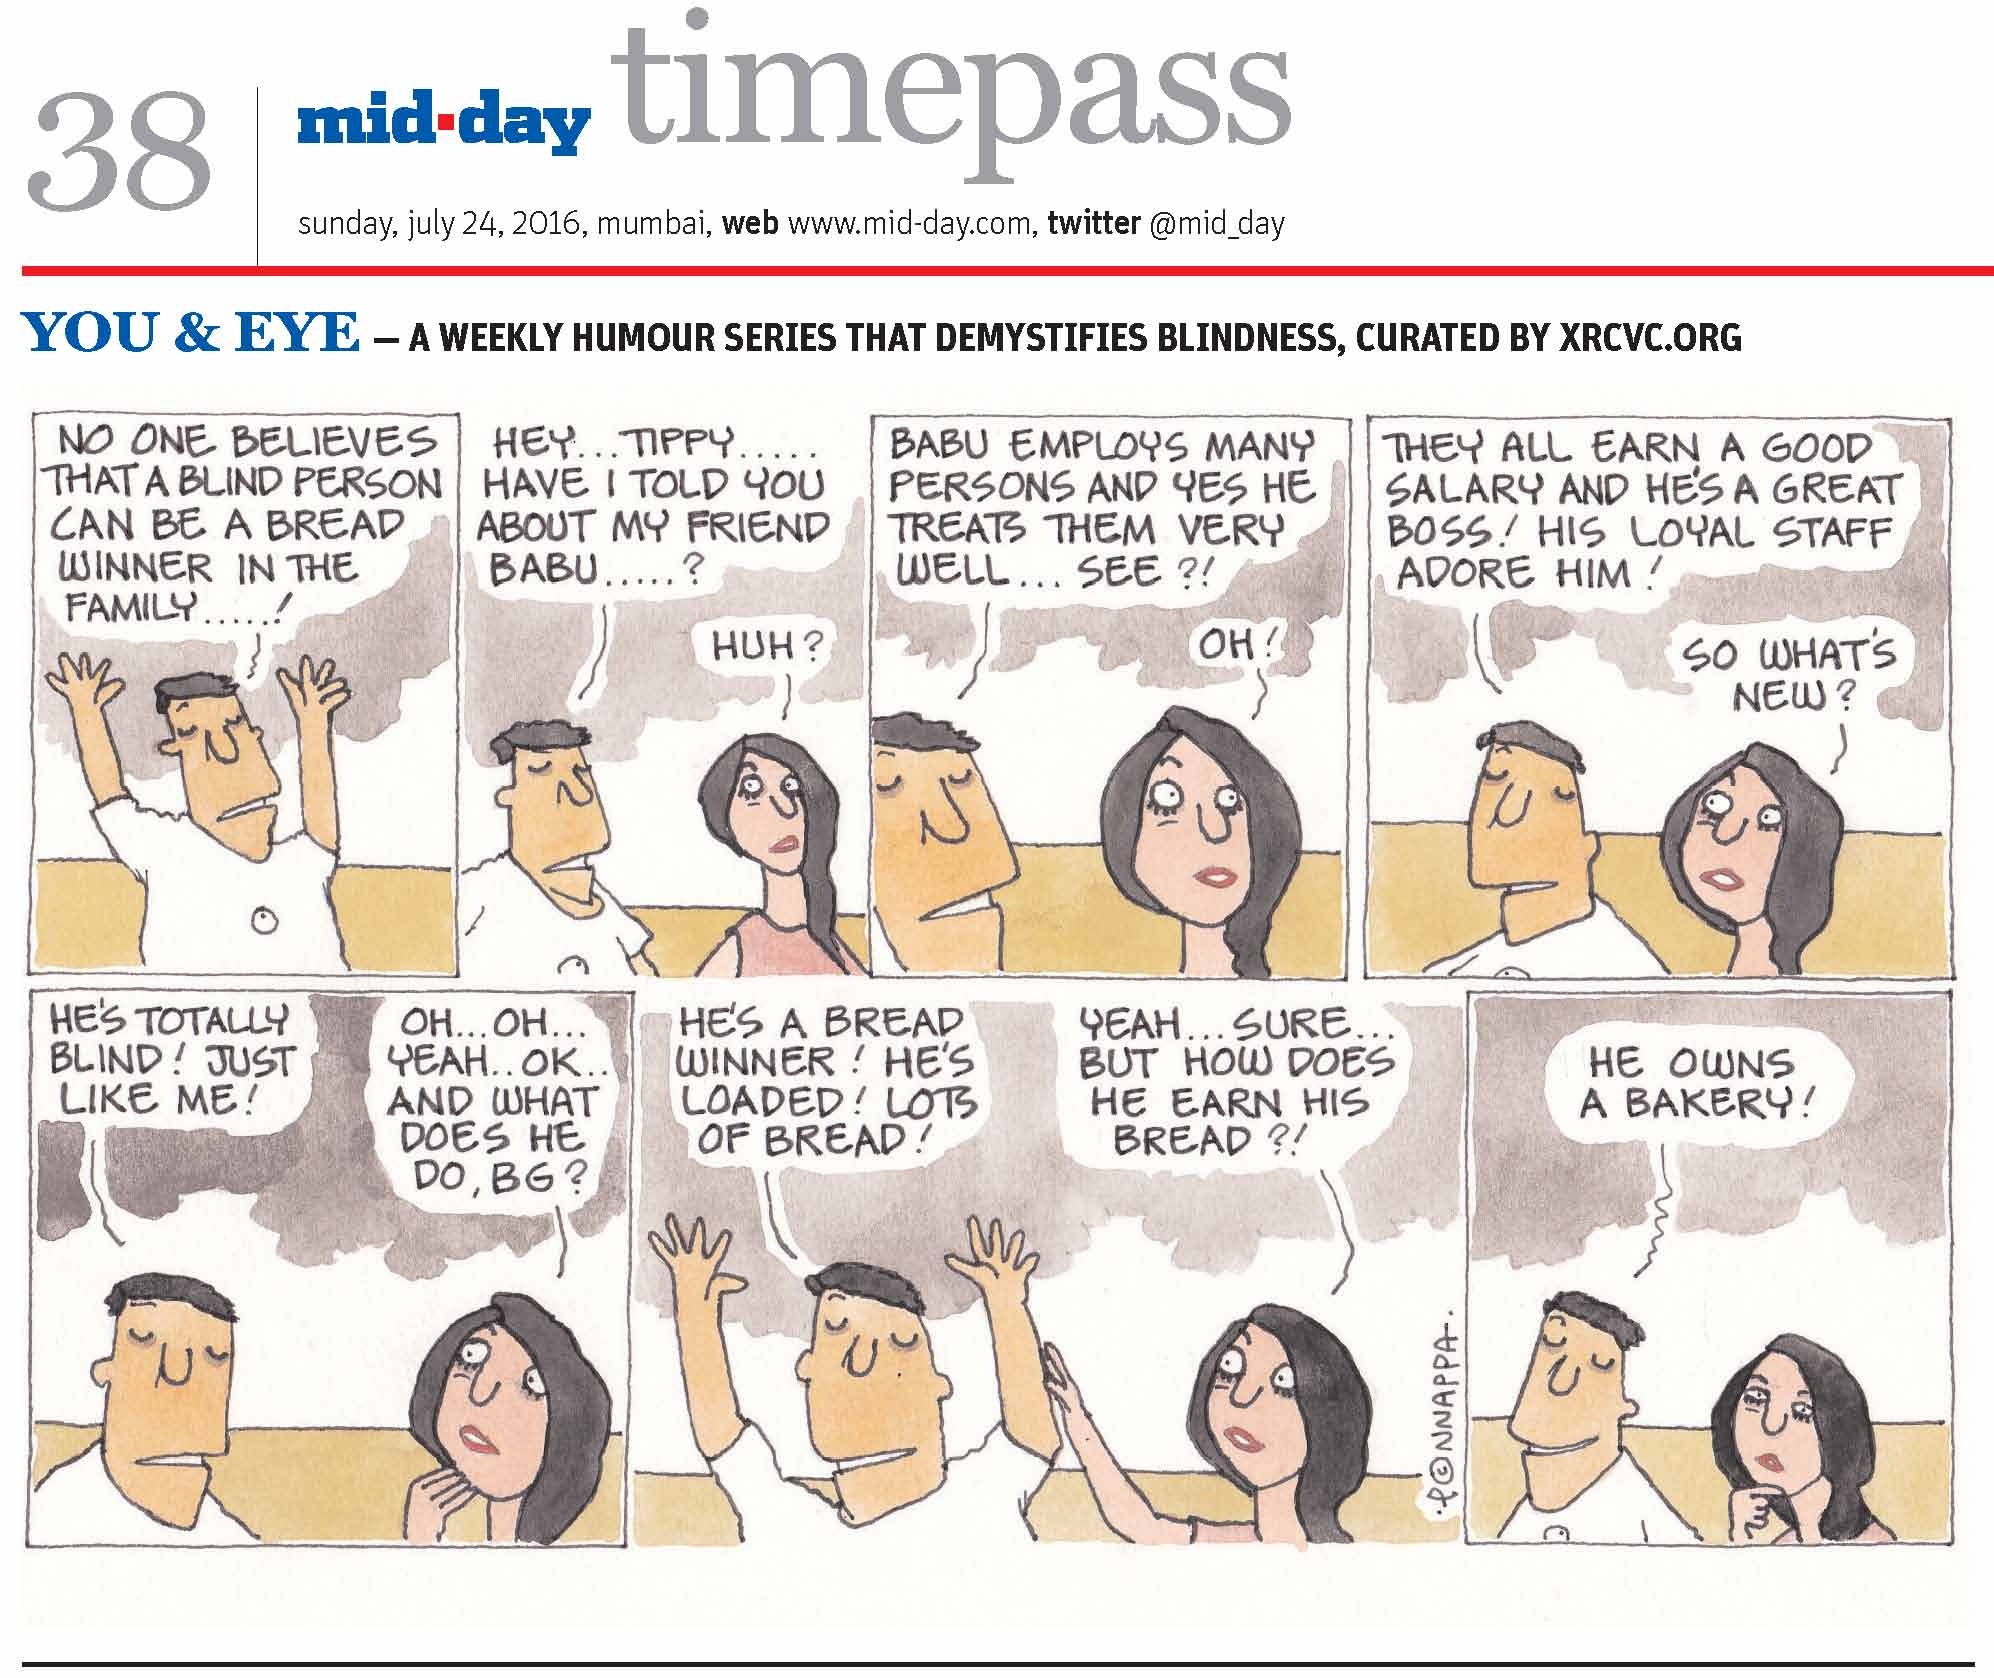 Page 38 mid-day timepass, sunday, july 24, 2016, mumbai, web: www.mid-day.com, twitter @mid_day YOU & EYE – A WEEKLY HUMOUR SERIES THAT DEMYSTIFIES BLINDNESS, CURATED BY XRCVC.ORG Image description: A cartoon strip with 7 frames… Frame 1: (The visually impaired man – BG – with his arms stretched straight upwards) BG: No one believes that a blind person can be a bread winner in the family…! Frame 2: (BG speaking to his sighted friend – Tippy) BG: Hey… Tippy… Have I told you about my friend, Babu…? Tippy: Huh? Frame 3: (A close-up of both as they continue talking) BG: Babu employs many persons and yes he treats them very well… see?! Tippy: Oh! Frame 4: (A close-up of both as they continue talking) BG: They all earn a good salary and he's a great boss! His loyal staff adore him! Tippy: So what's new? Frame 5: (BG continues talking while Tippy touches her right hand to her chin in surprise) BG: He's totally blind! Just like me! Tippy: Oh… Oh… Yeah… OK… and what does he do, BG? Frame 6: